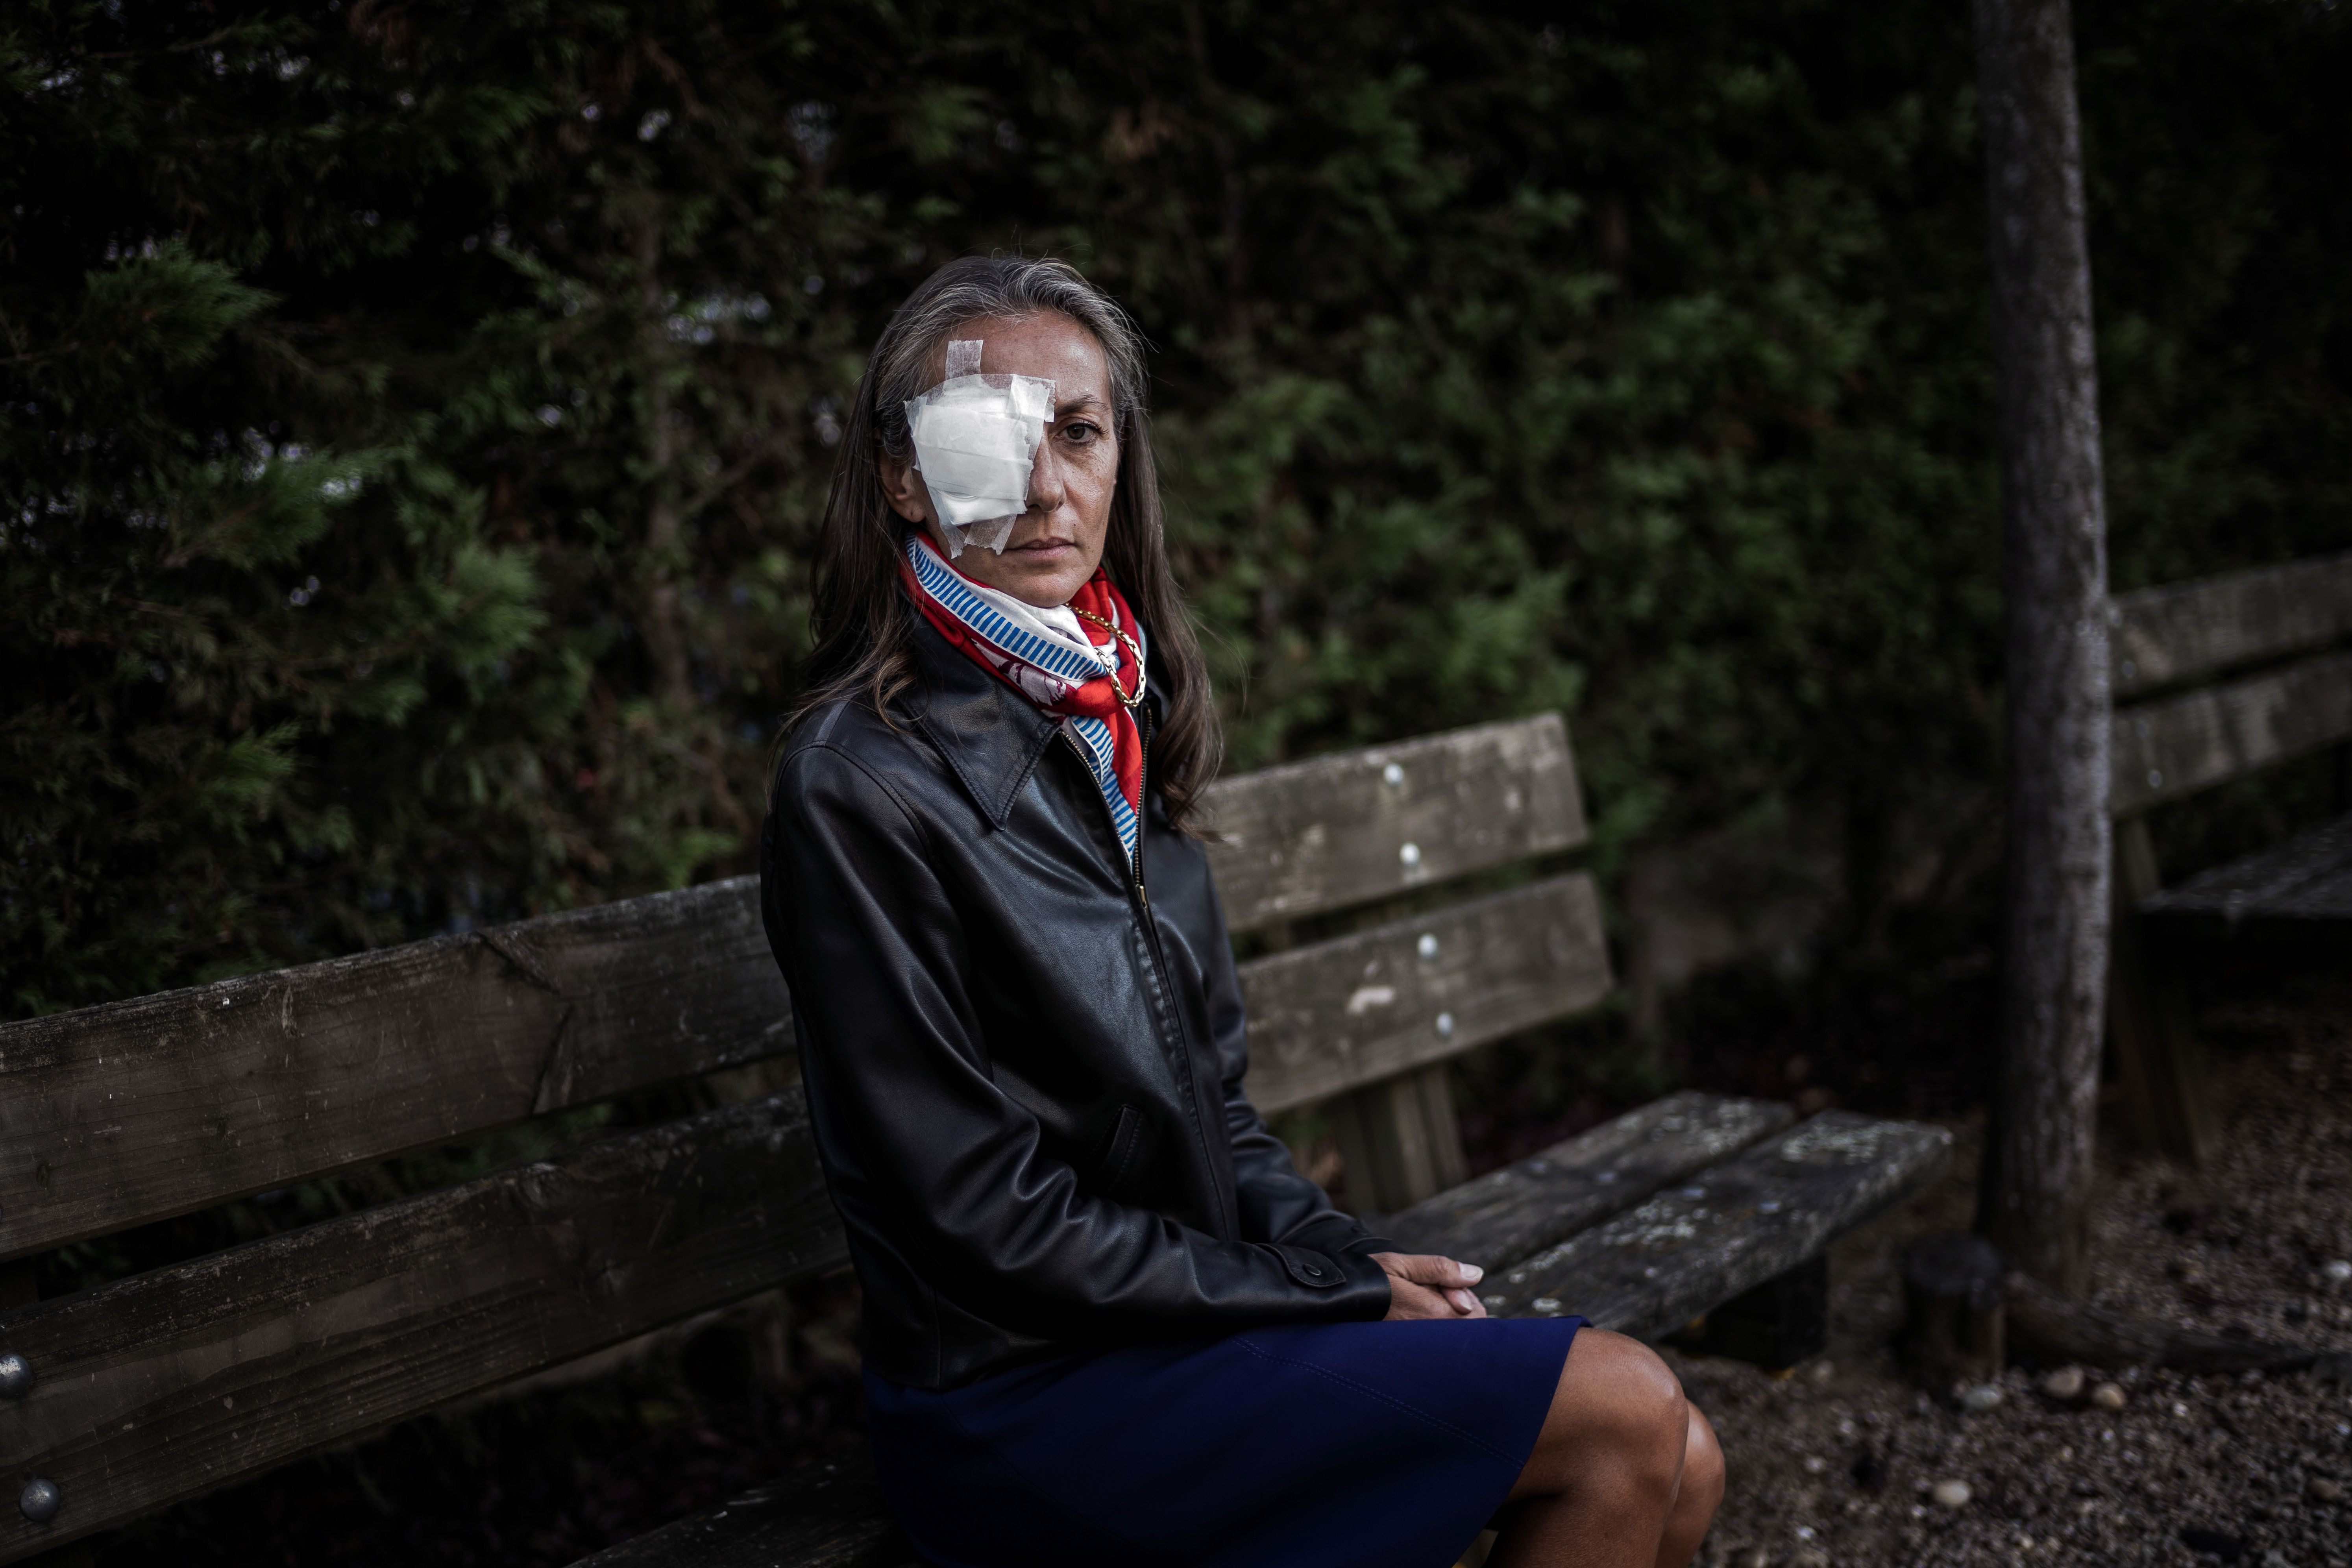 Frenchwoman Corine Remande, 49, poses on October 3, 2018 in Lyon after she said she was taking legal action against the golf Ryder Cup event's organisers after being hit and lost sight in her right eye on Friday's opening day, when Brooks Koepka's drive on the par-four sixth hole careered into the crowd at Le Golf National, near Paris. (Photo by JEFF PACHOUD / AFP)        (Photo credit should read JEFF PACHOUD/AFP/Getty Images)